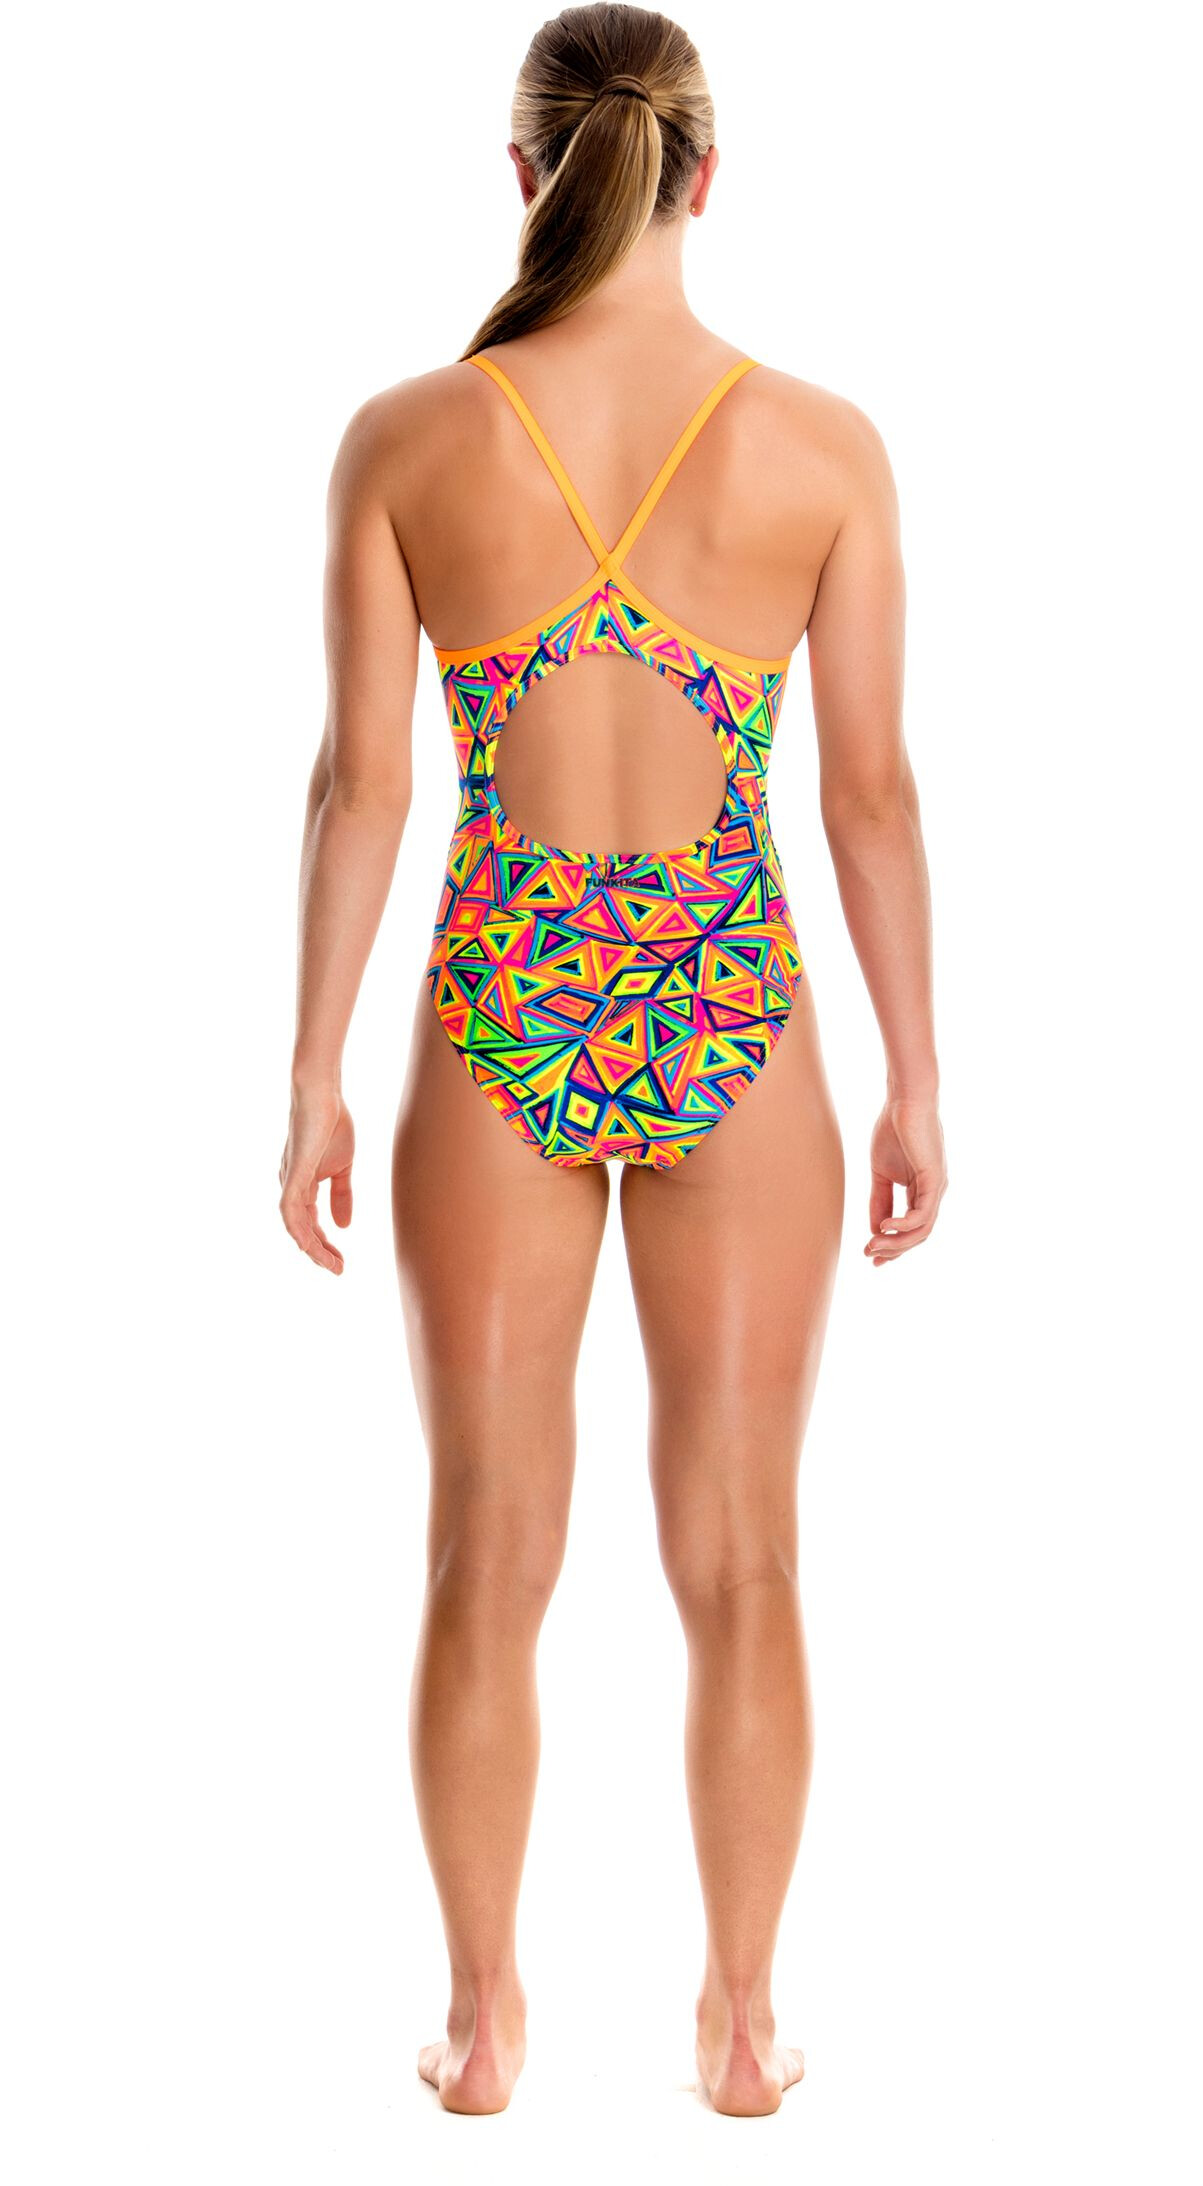 Funkita One Piece Swimsuit Girls Crazy Crayon online ...